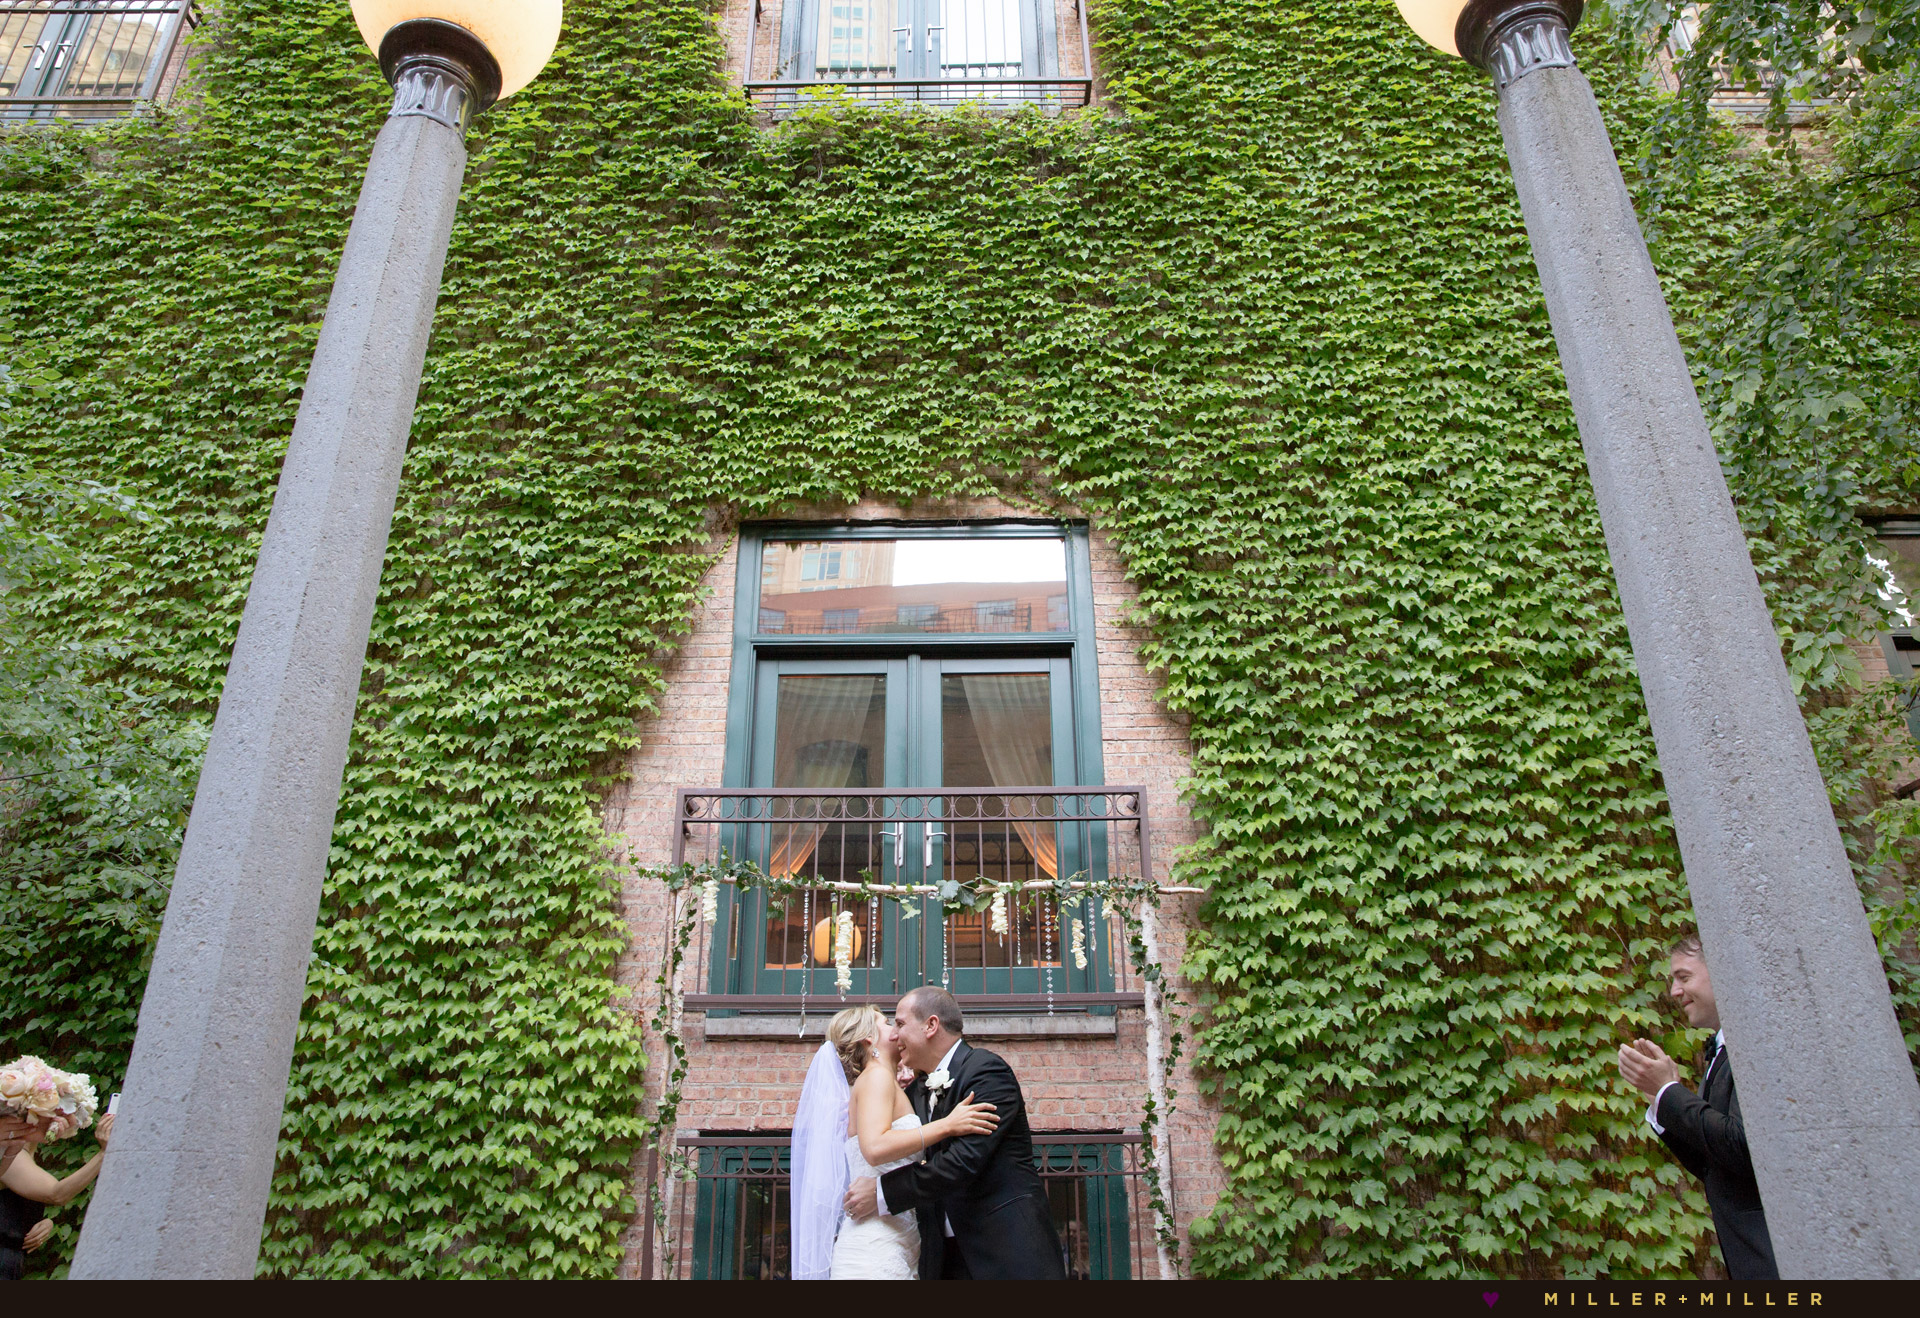 Ivy Room outdoor wedding ceremony